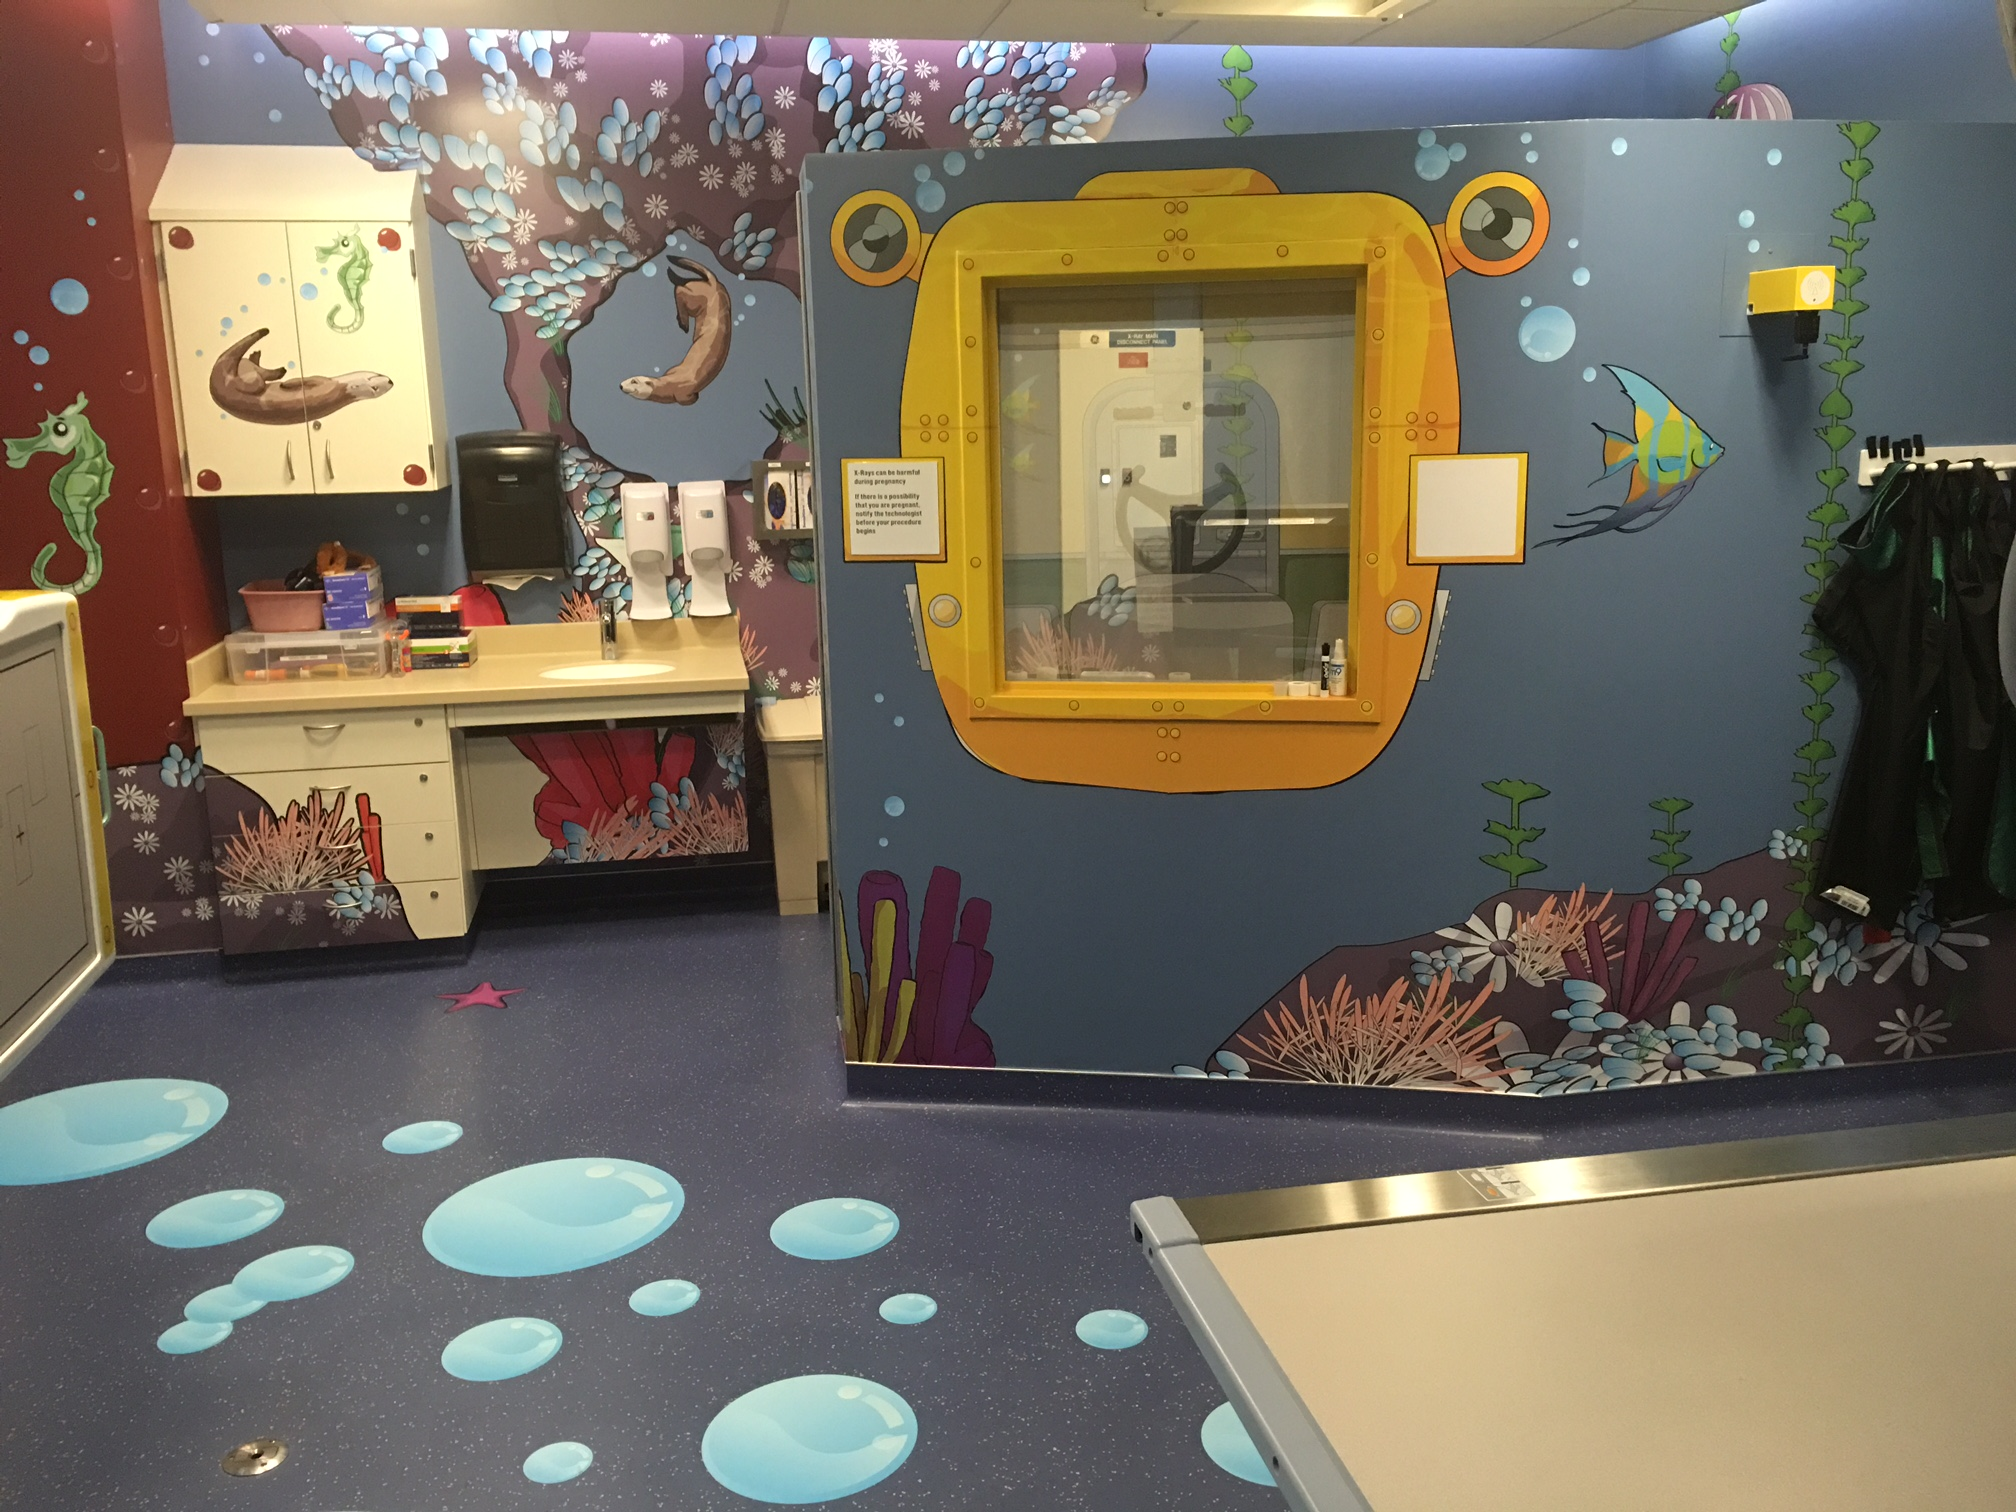 Themed imaging rooms help children navigate the health care experience at UCSF.